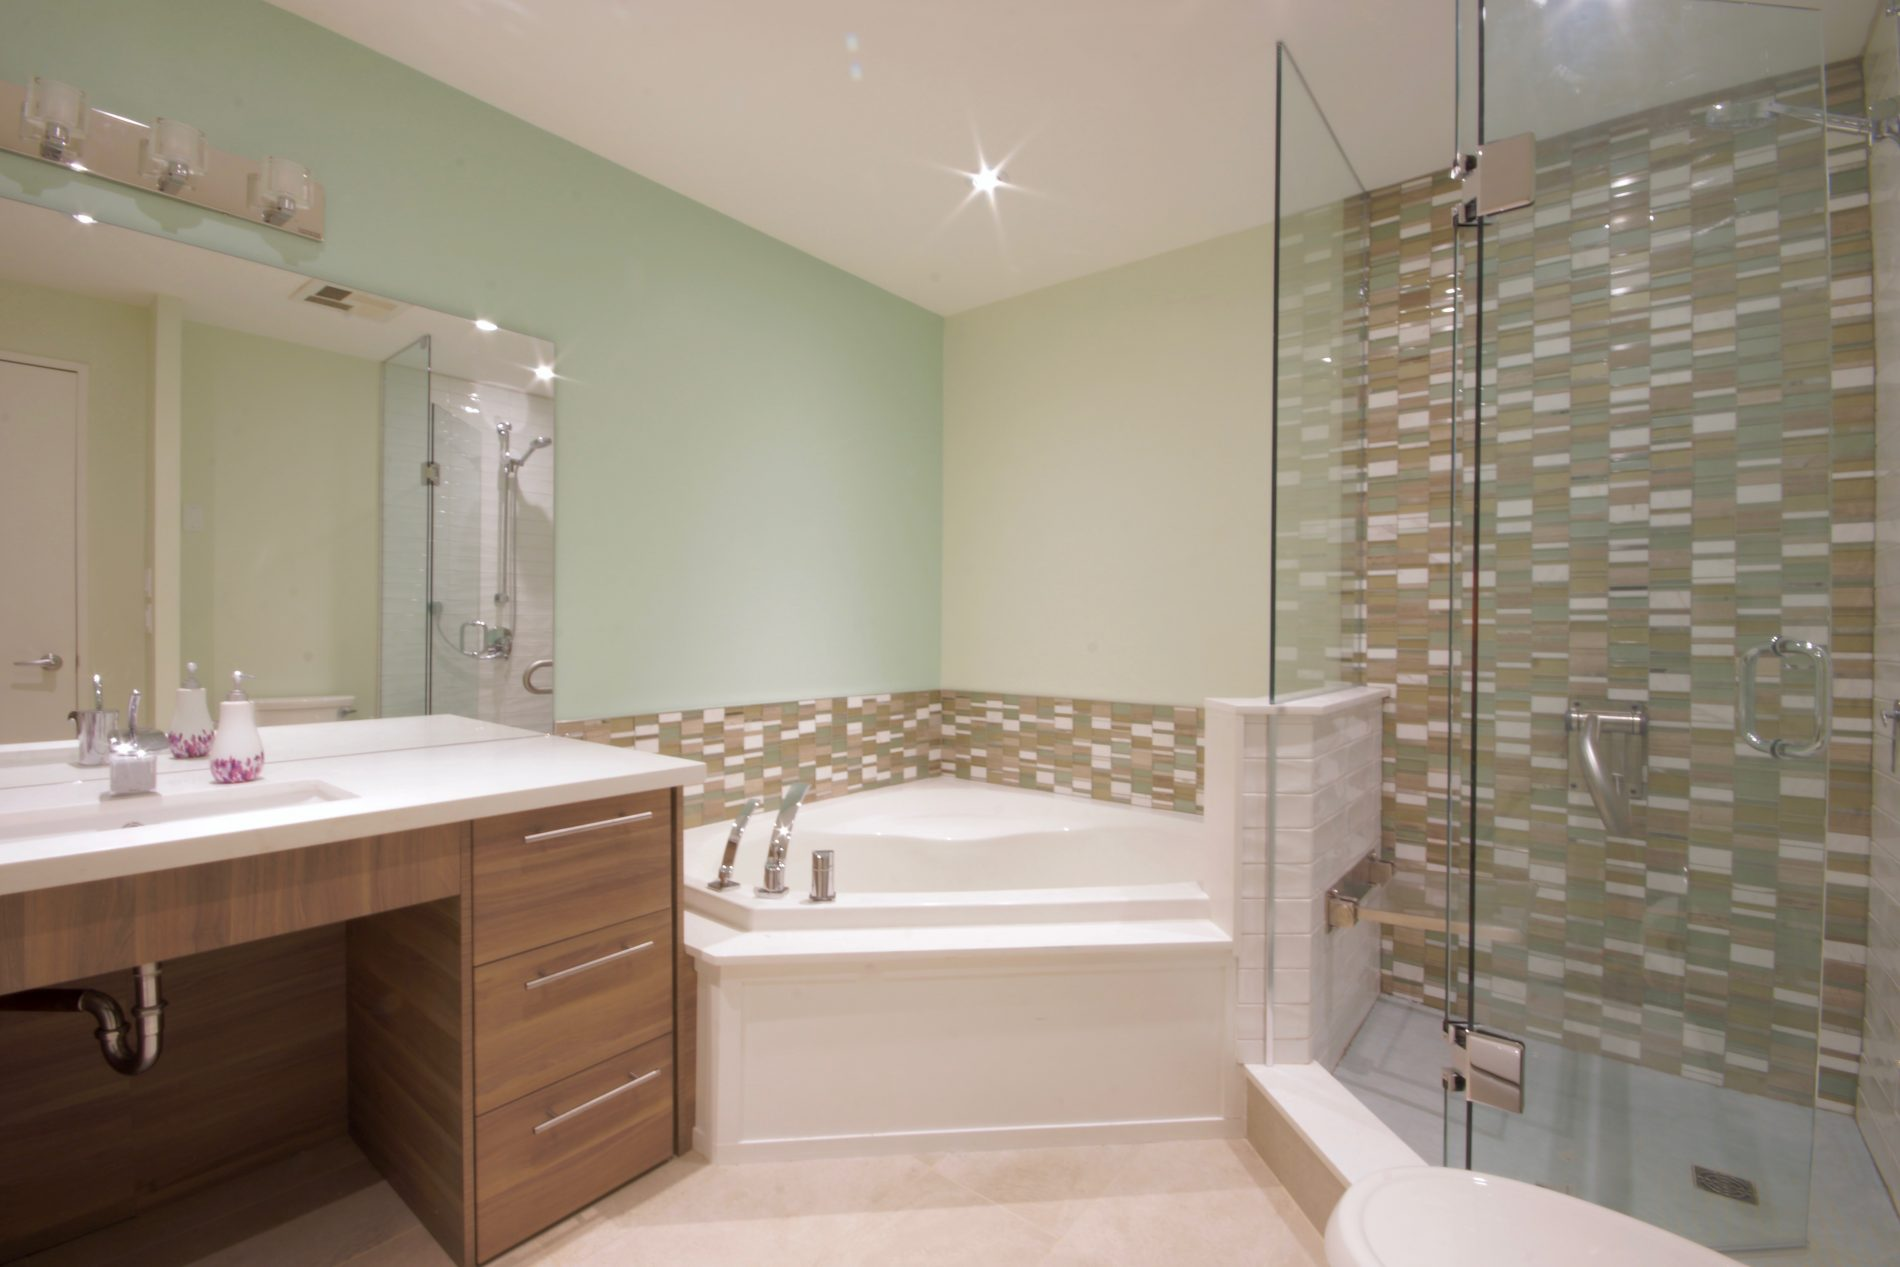 Palace Pier Court – Humber Bay Toronto Accessible Bathroom - Featured Image